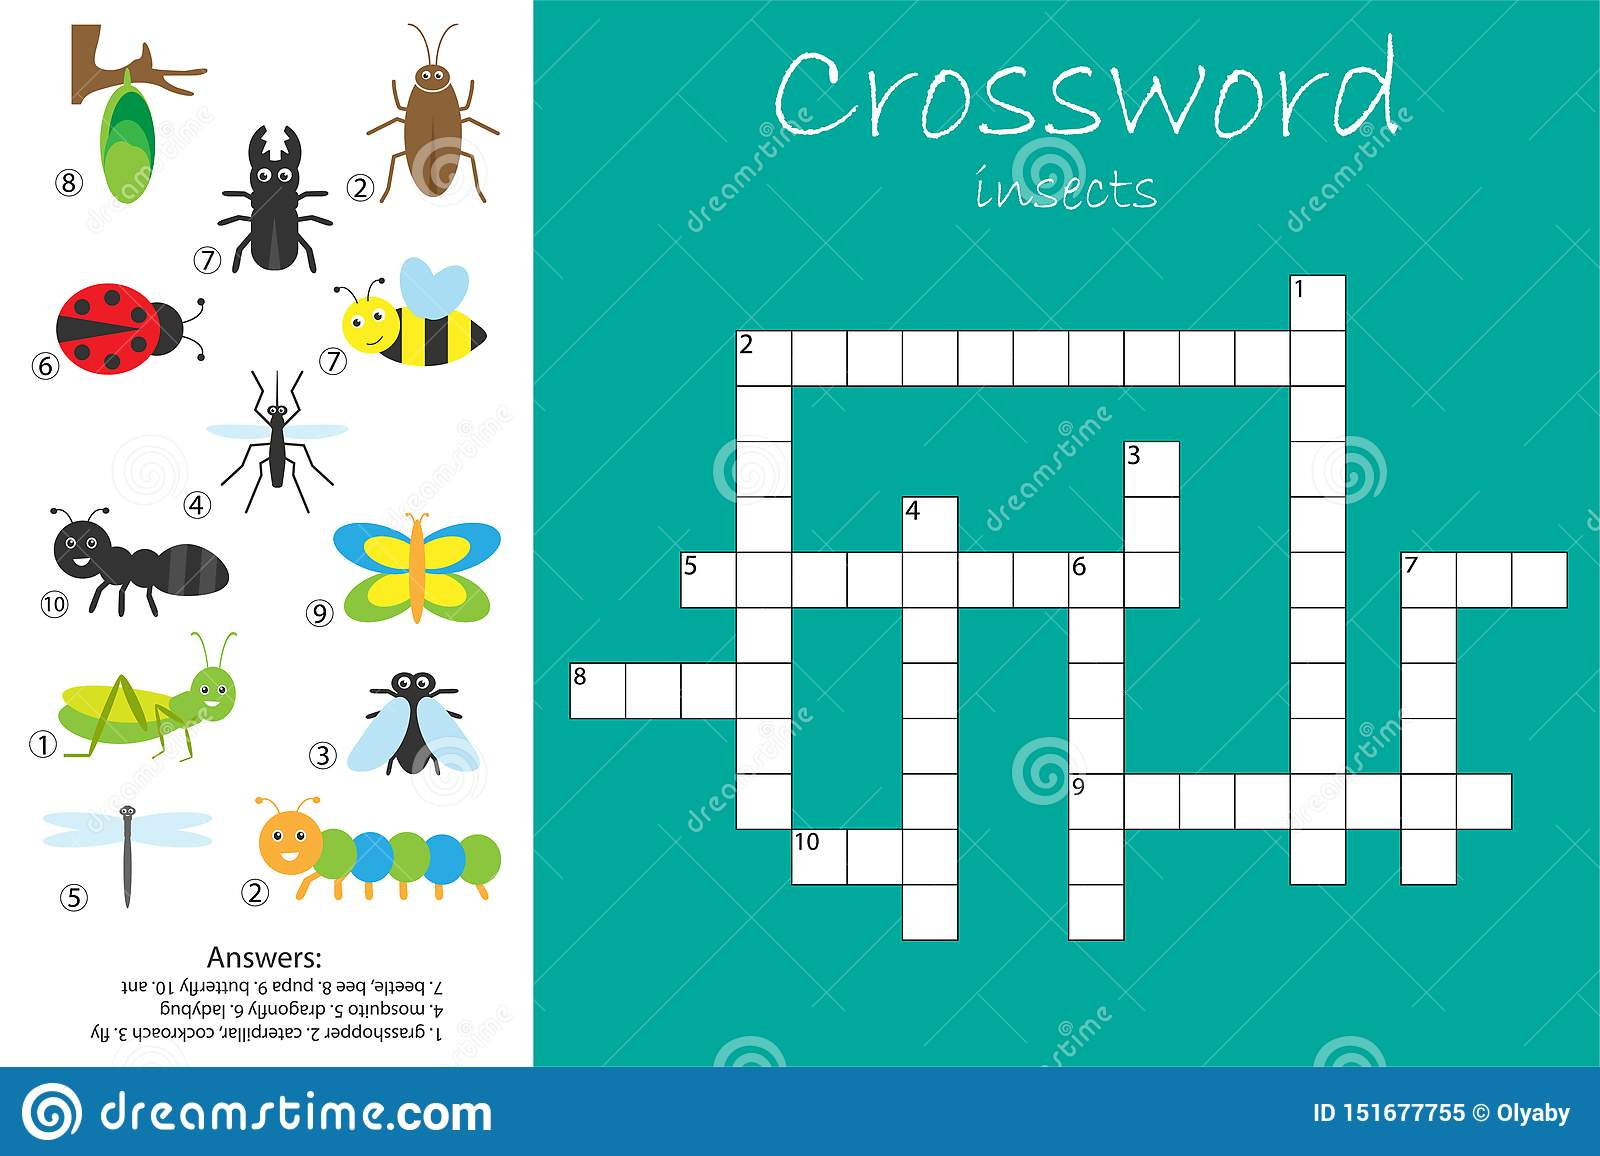 Crossword For Children Insect Theme Fun Education Game